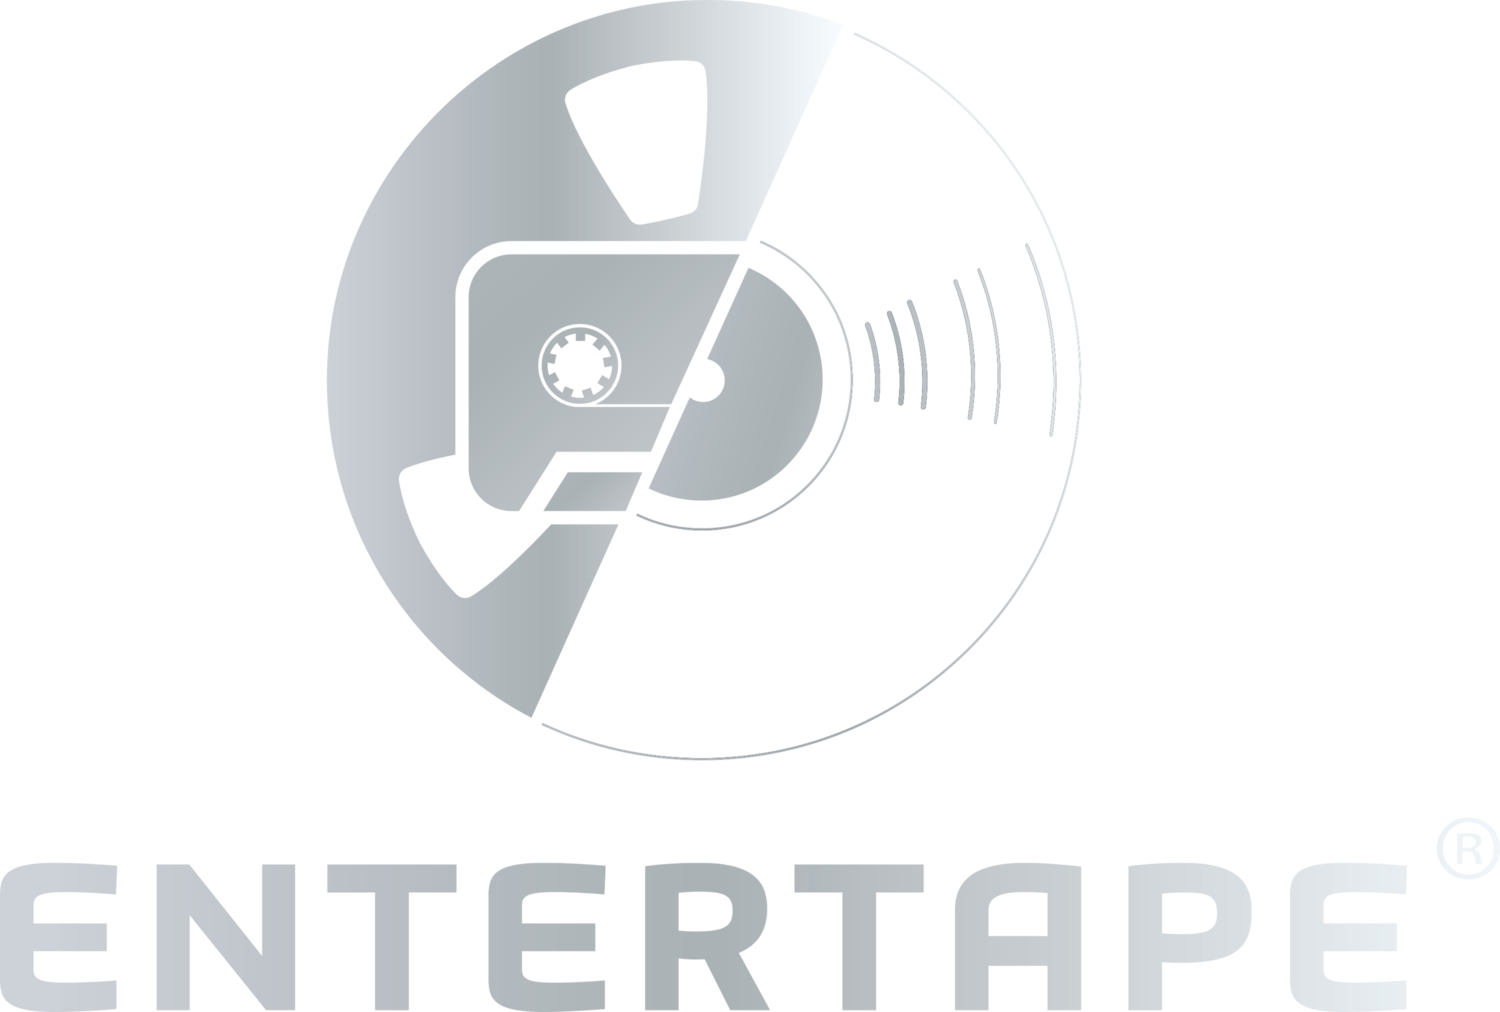 ENTERTAPE